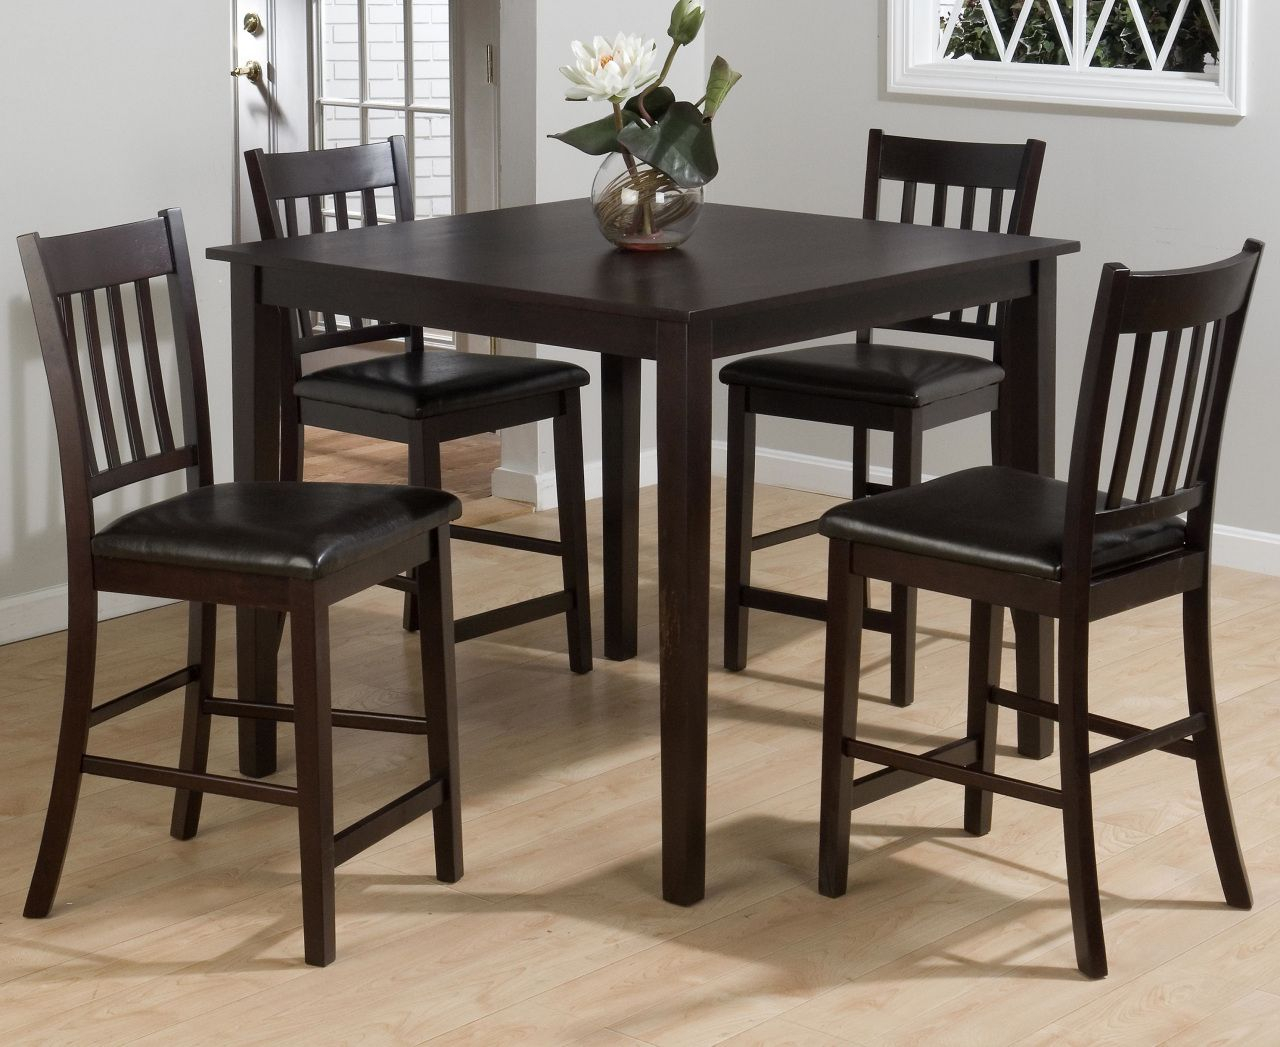 50 Big Lots Dining Room Tables Rustic Modern Furniture throughout sizing 1280 X 1047